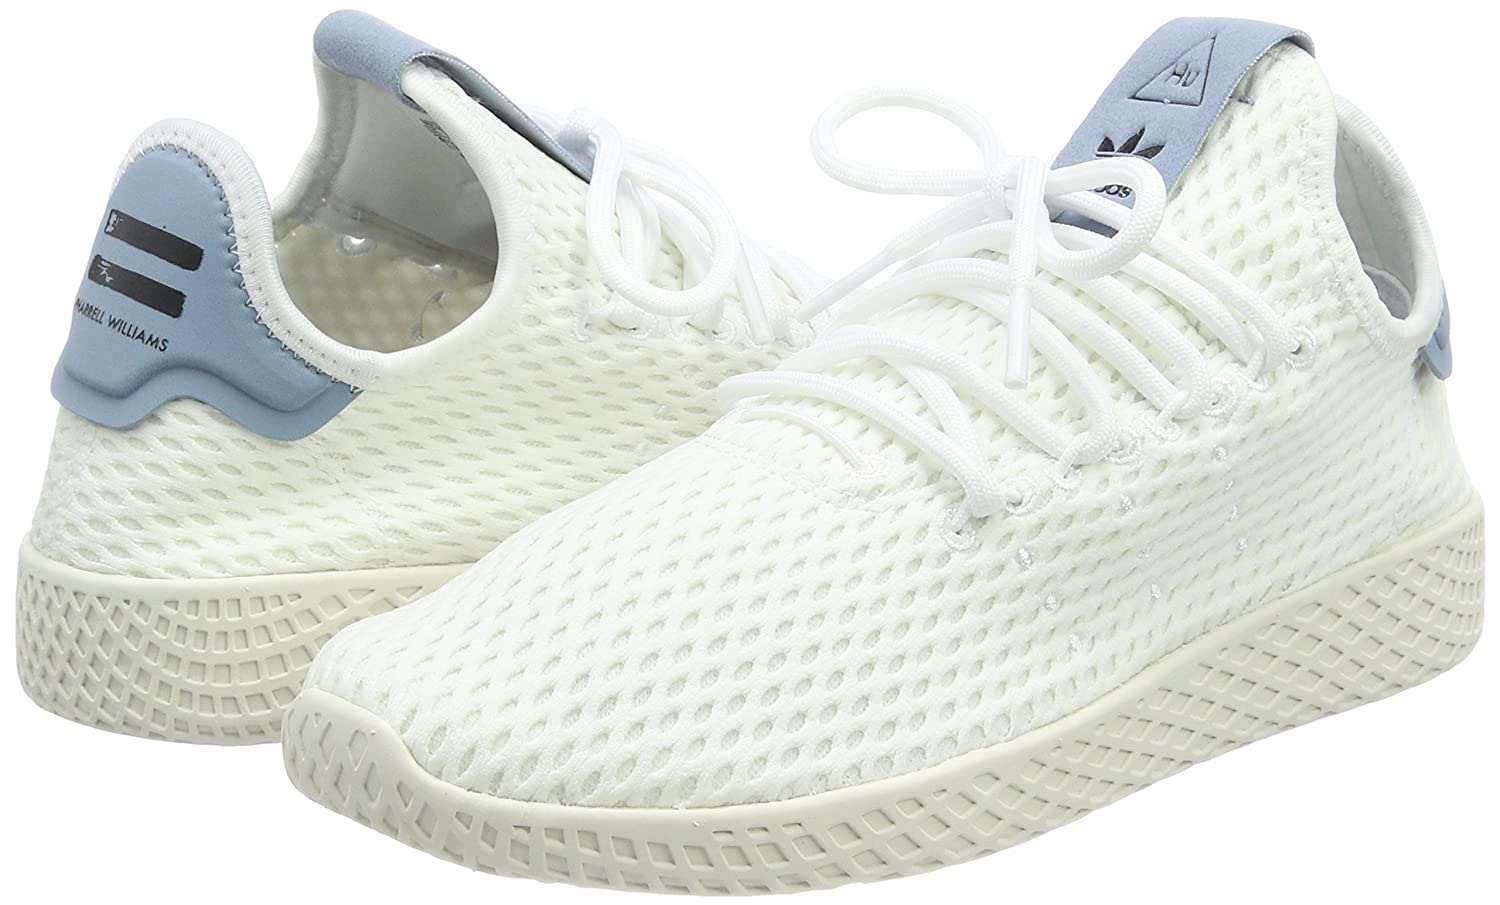 Amazon.com: Adidas Pharrell Williams Tennis Hu Mens Sneakers White: Sports & Outdoors